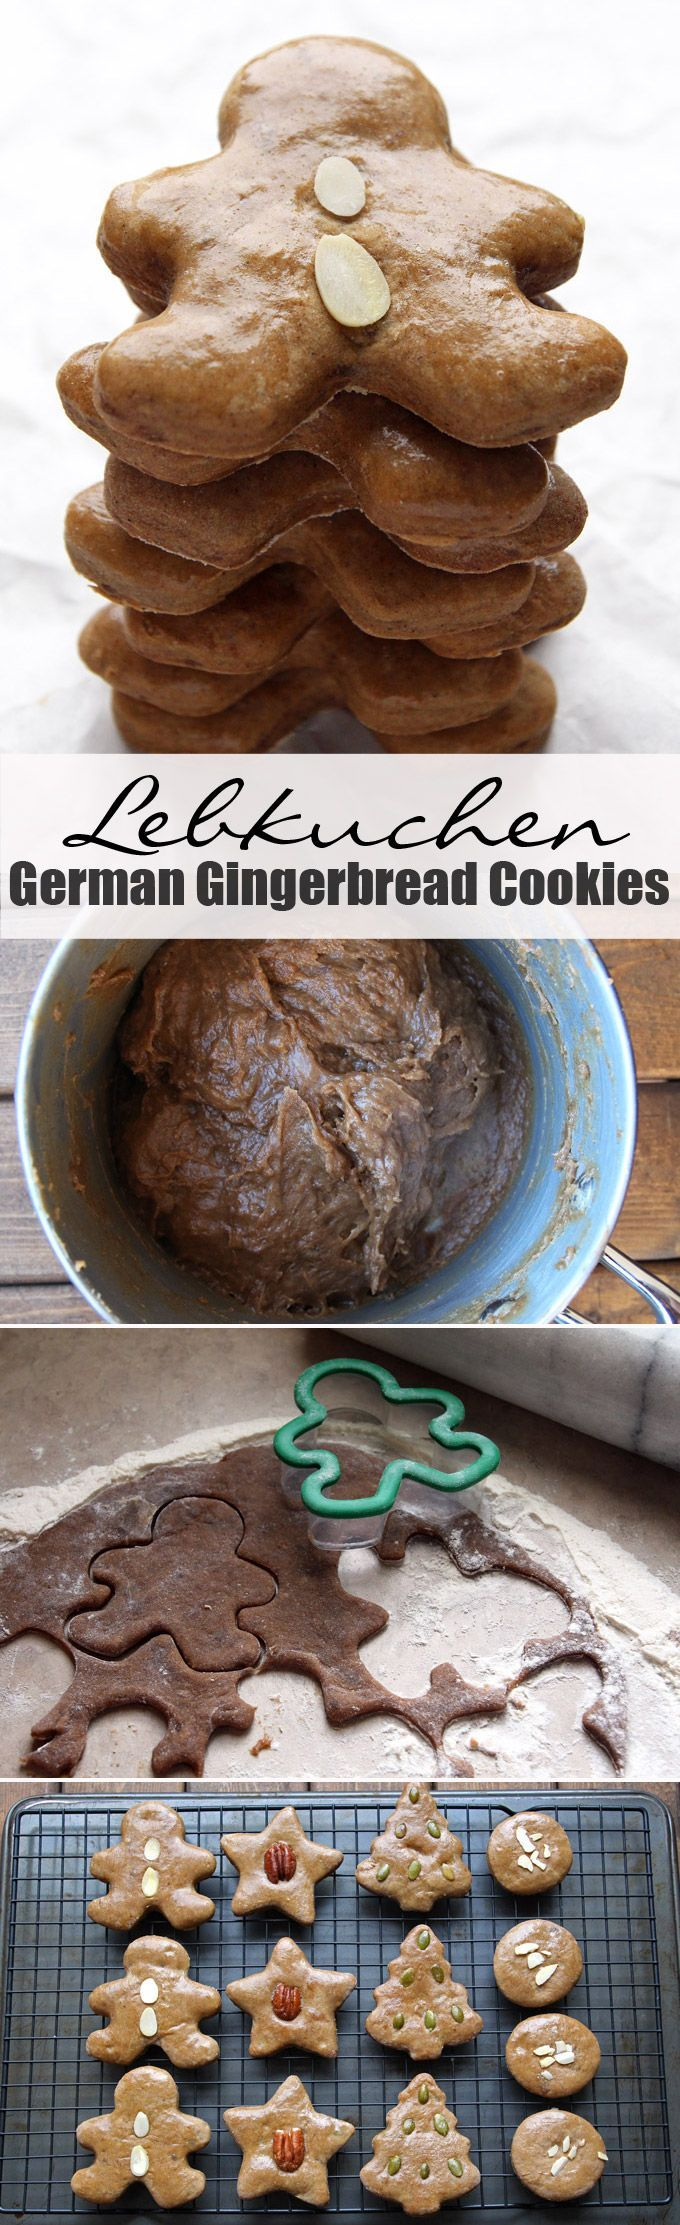 Lebkuchen - German gingerbread cookies. This recipe for soft and chewy gingerbread cookies is a traditional German holiday treat.